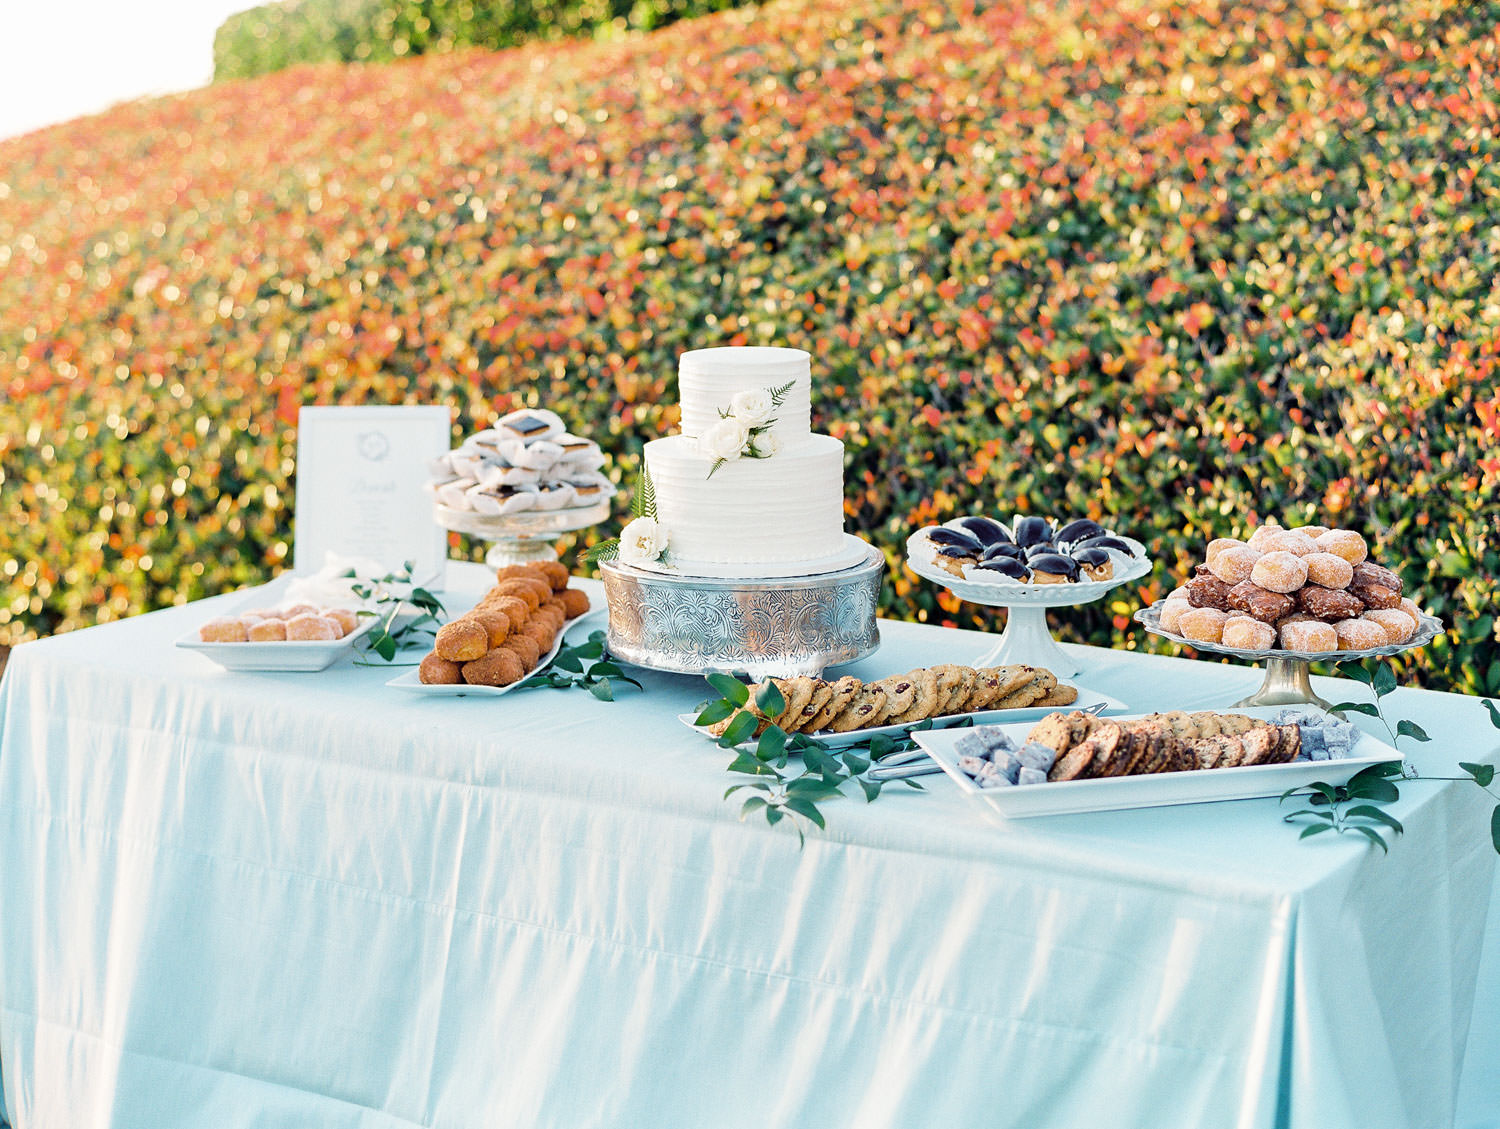 Film photo of an al fresco reception dessert table with blue linen, white two tier cake, and several small desserts planned by Luxe Events. Del Mar Country Club Wedding by Cavin Elizabeth Photography